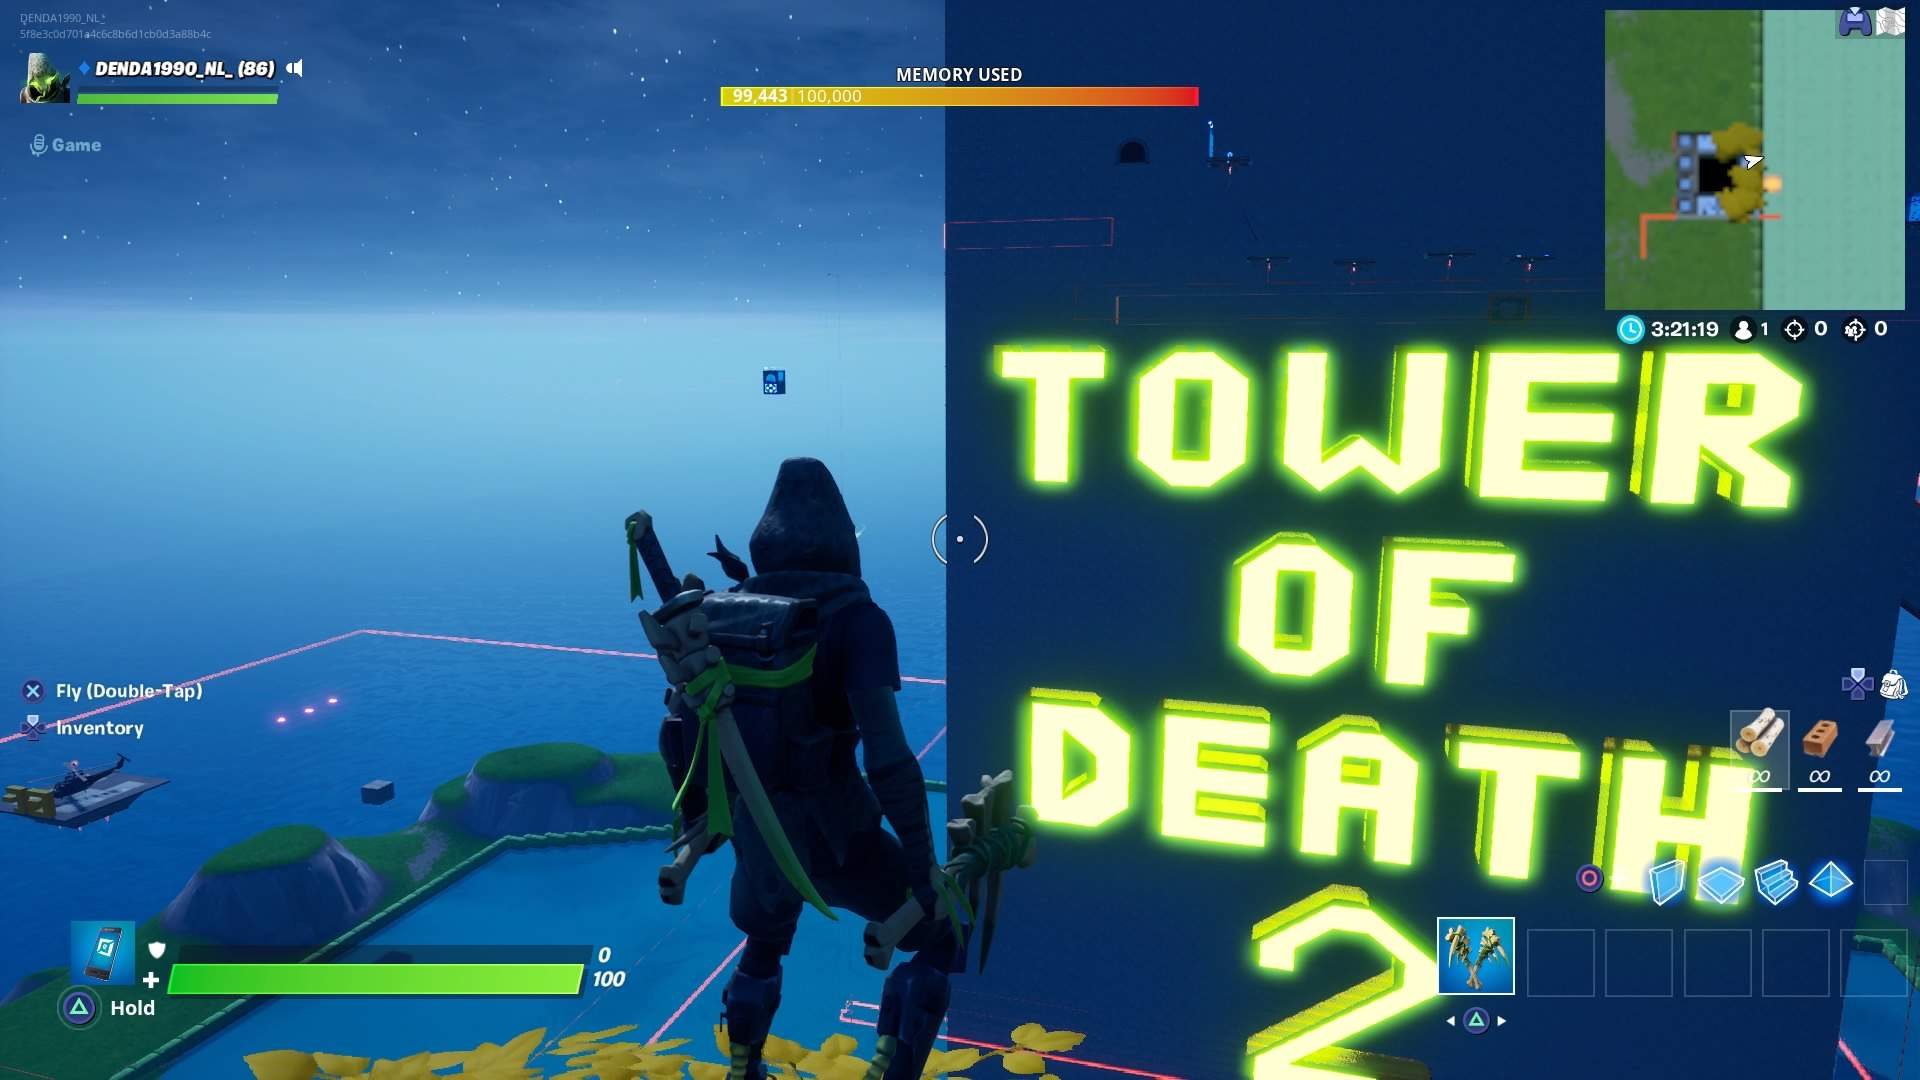 TOWER OF DEATH 2